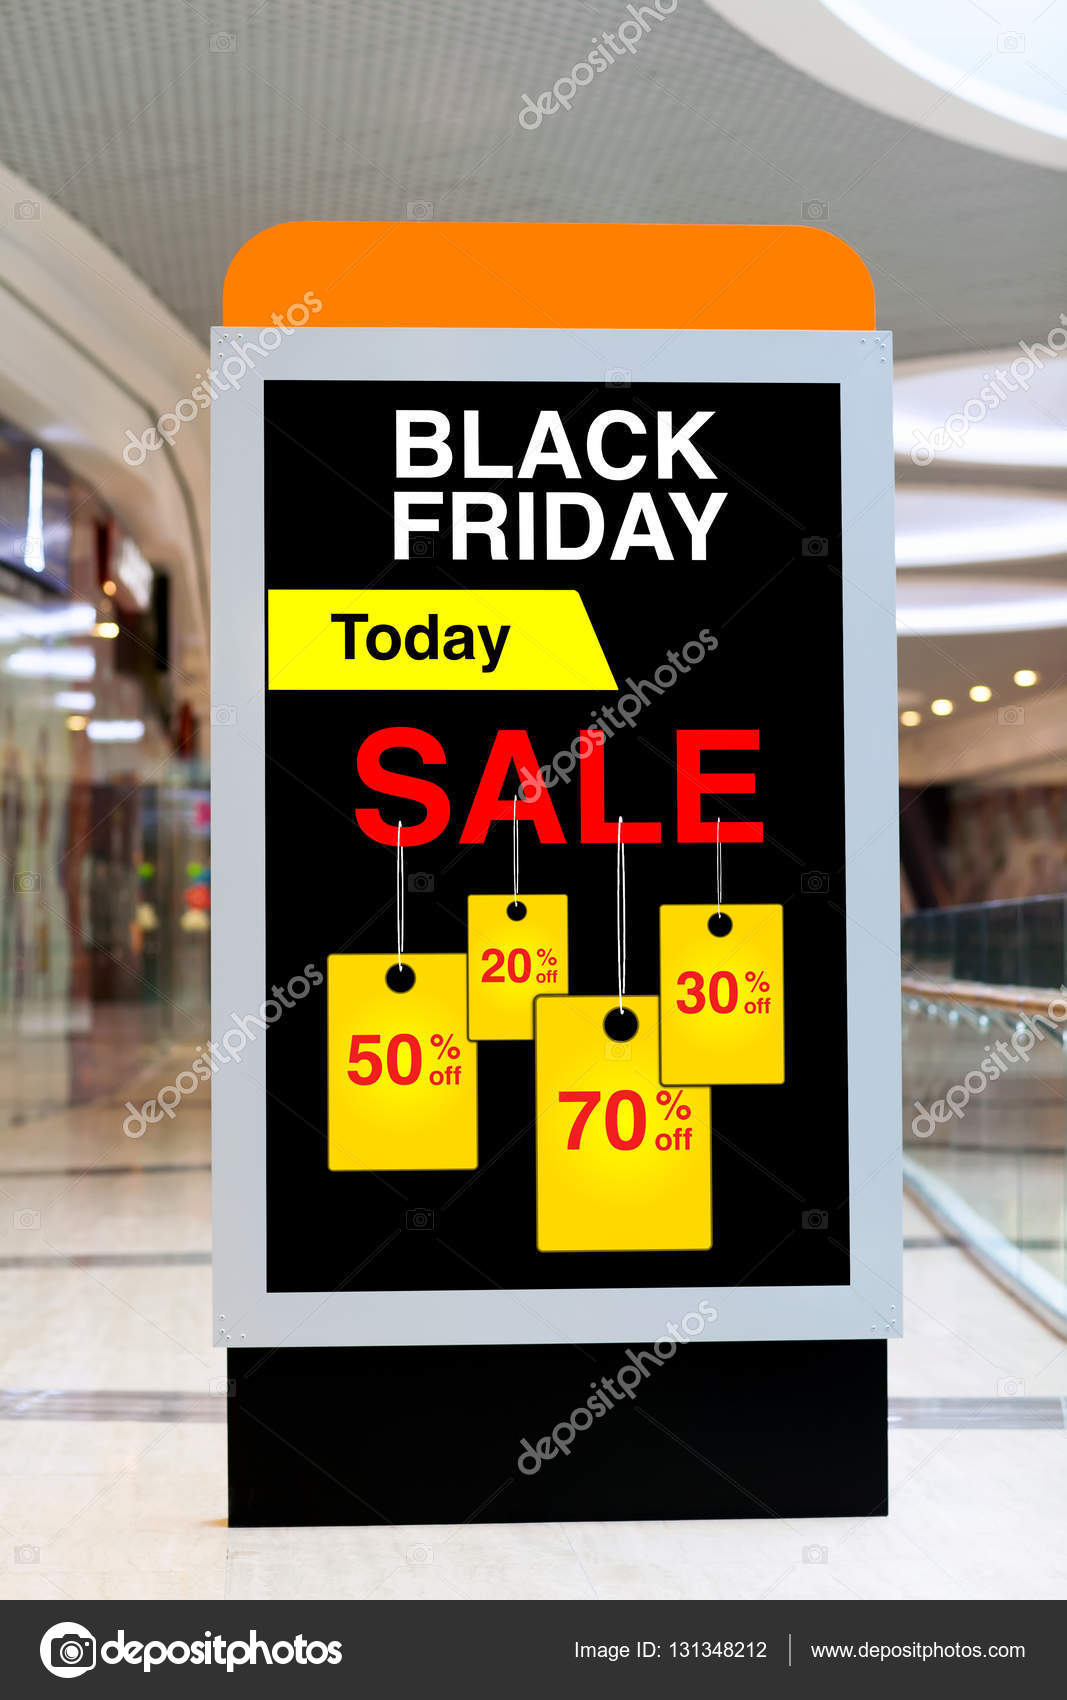 Rabatte Black Friday Plakatwerbung Black Friday Und Rabatte In Mitte Groß Stockfoto